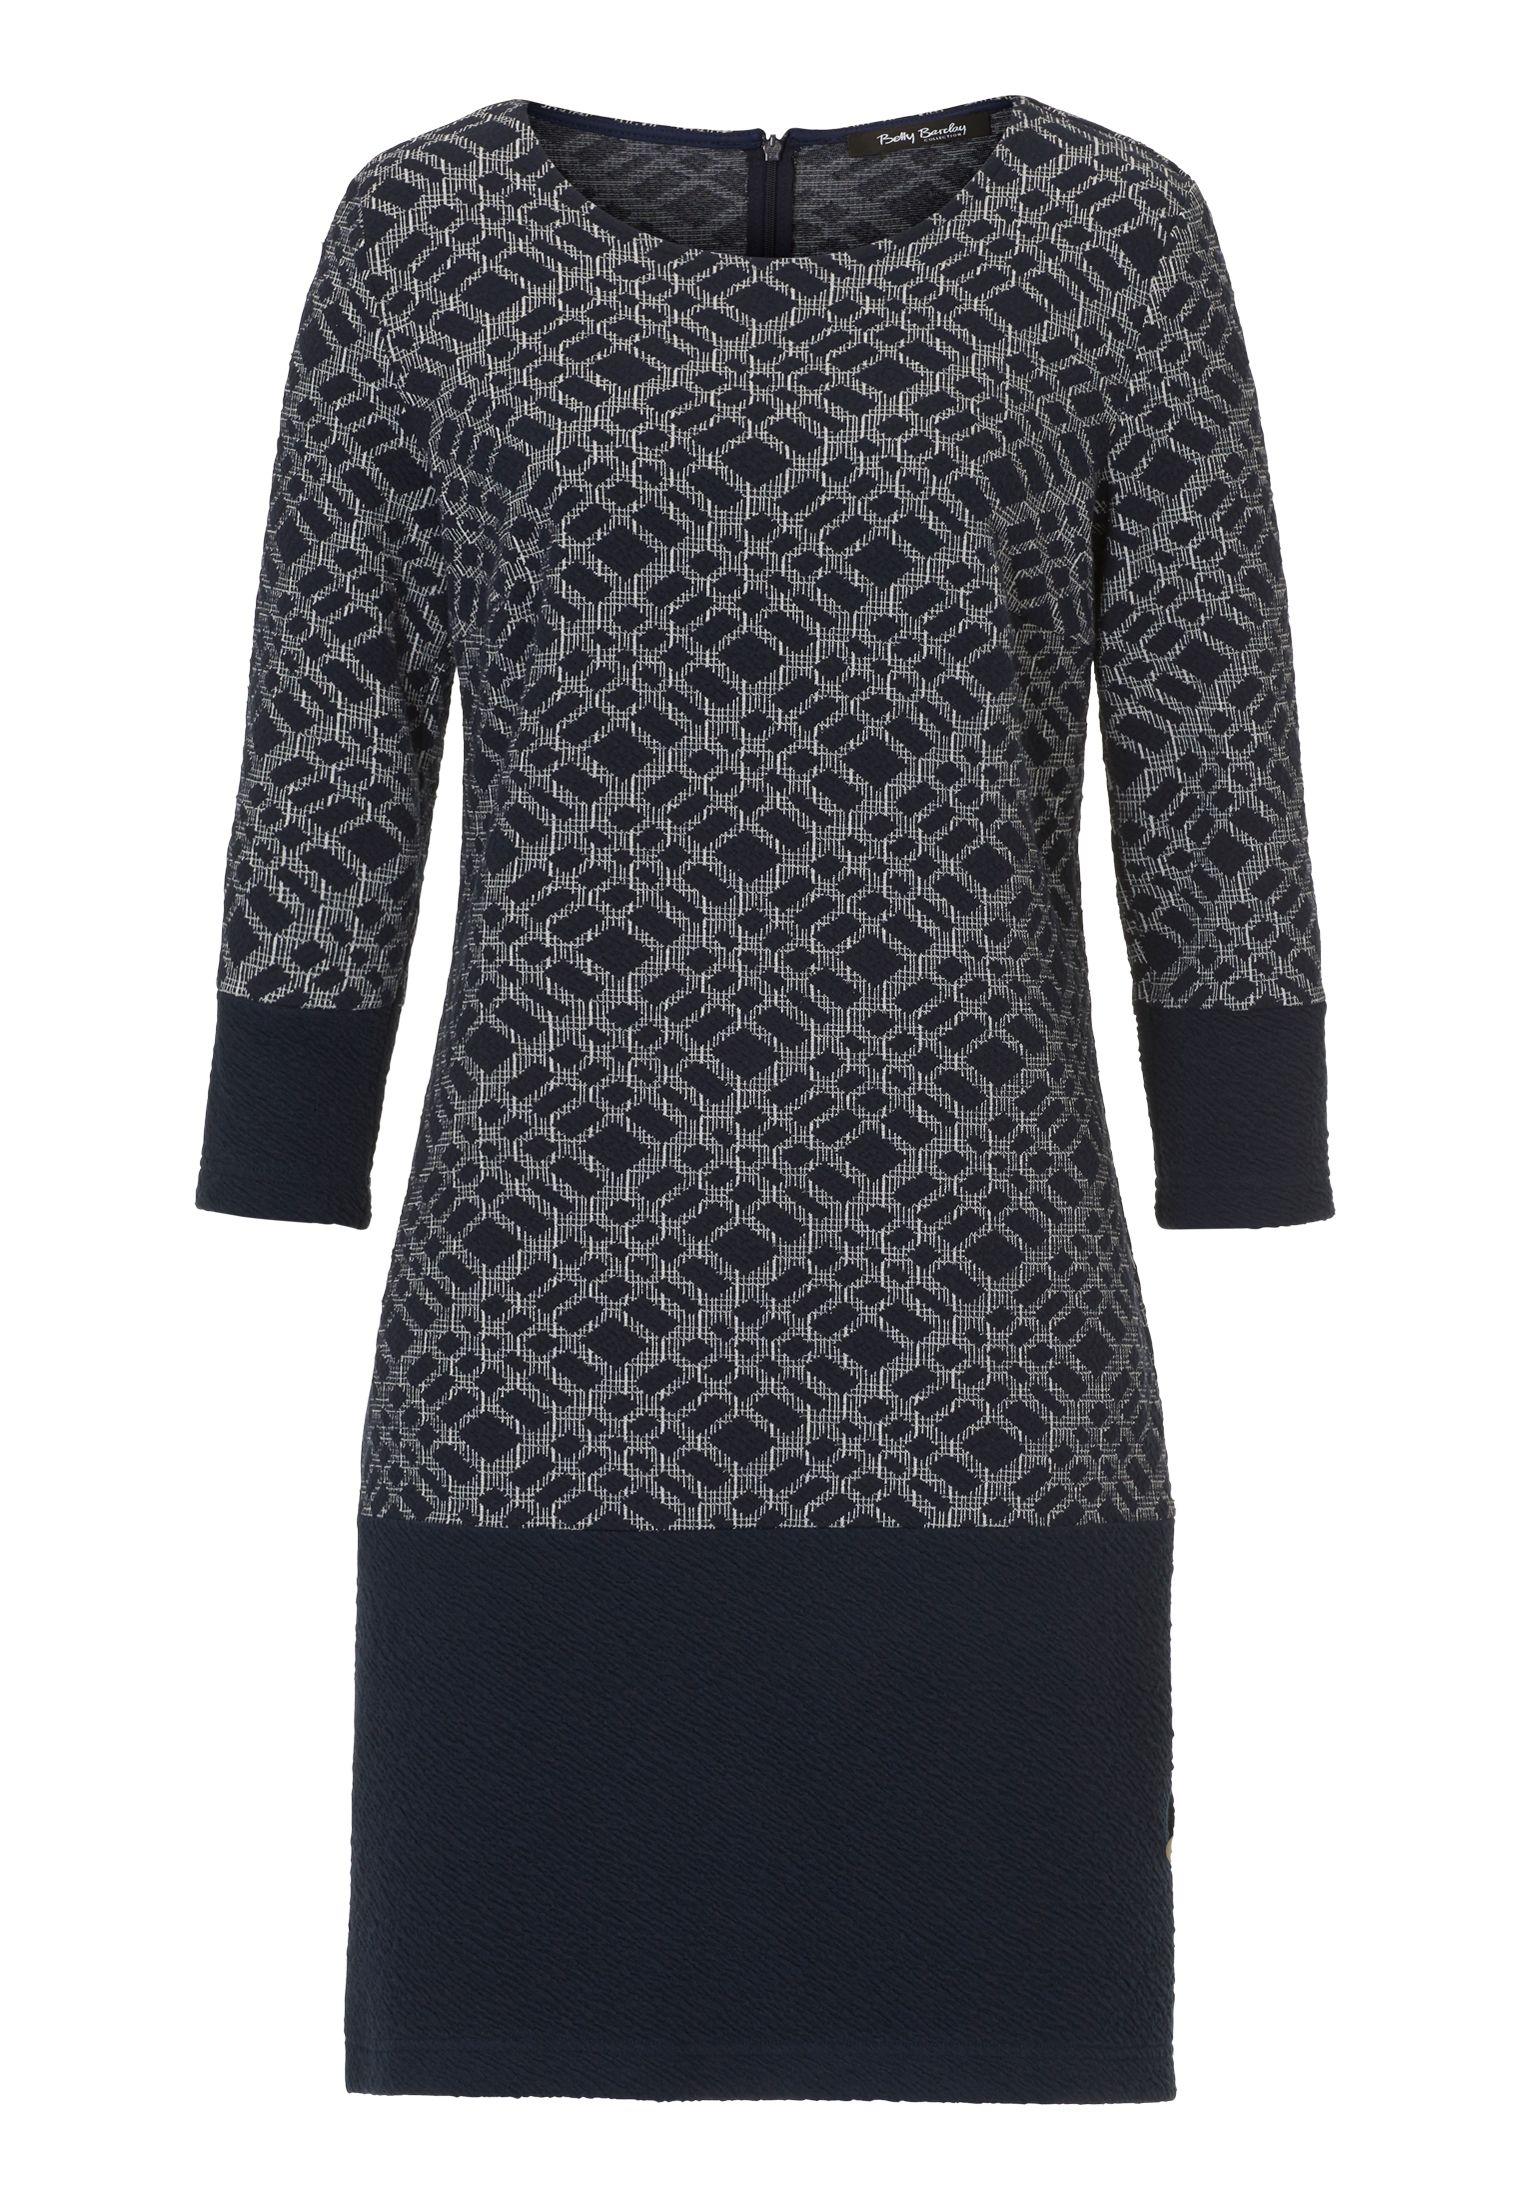 Betty Barclay Graphic textured dress, Multi-Coloured